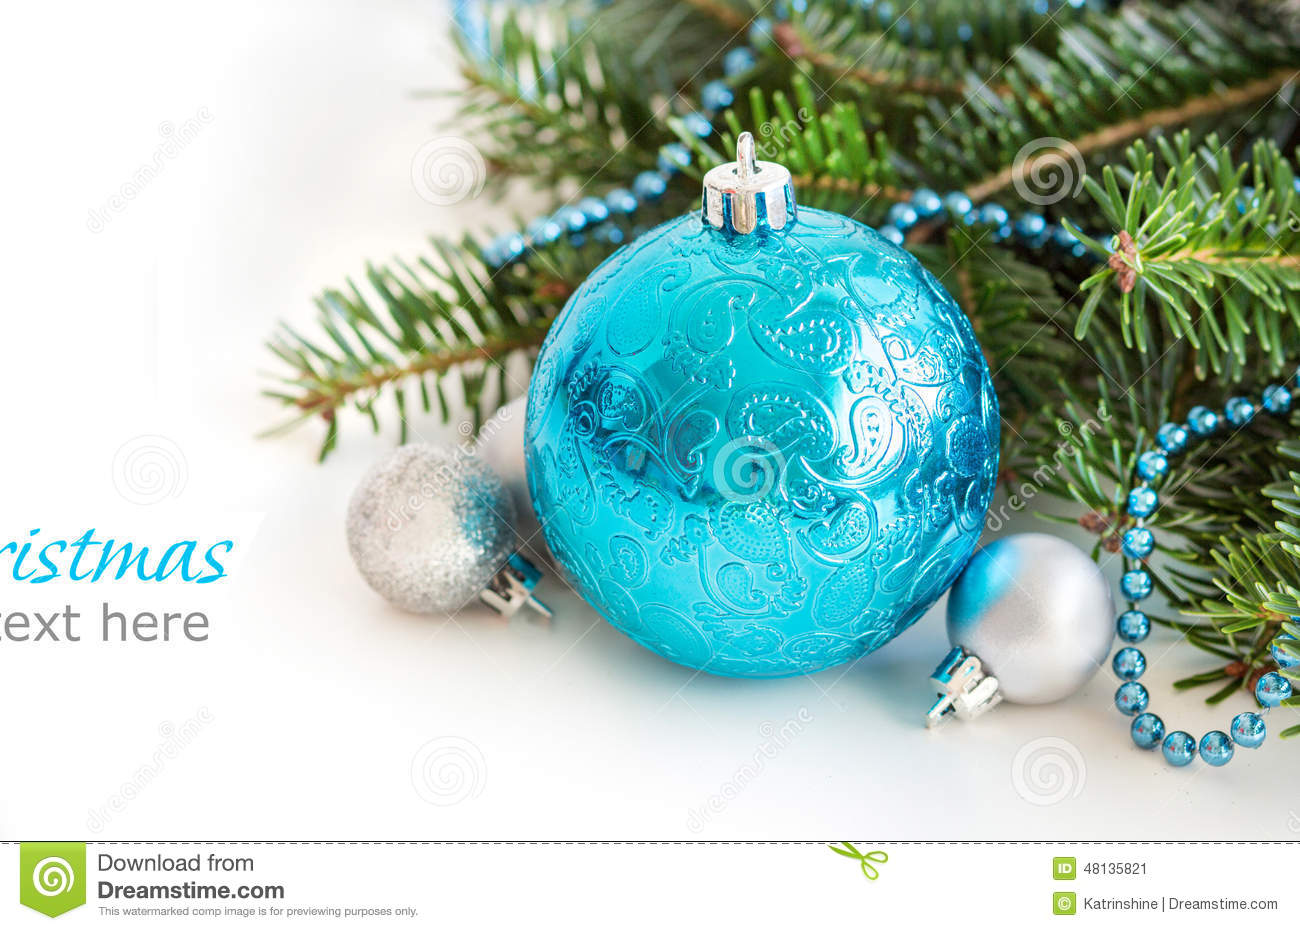 Background Border Christmas Silver Turquoise